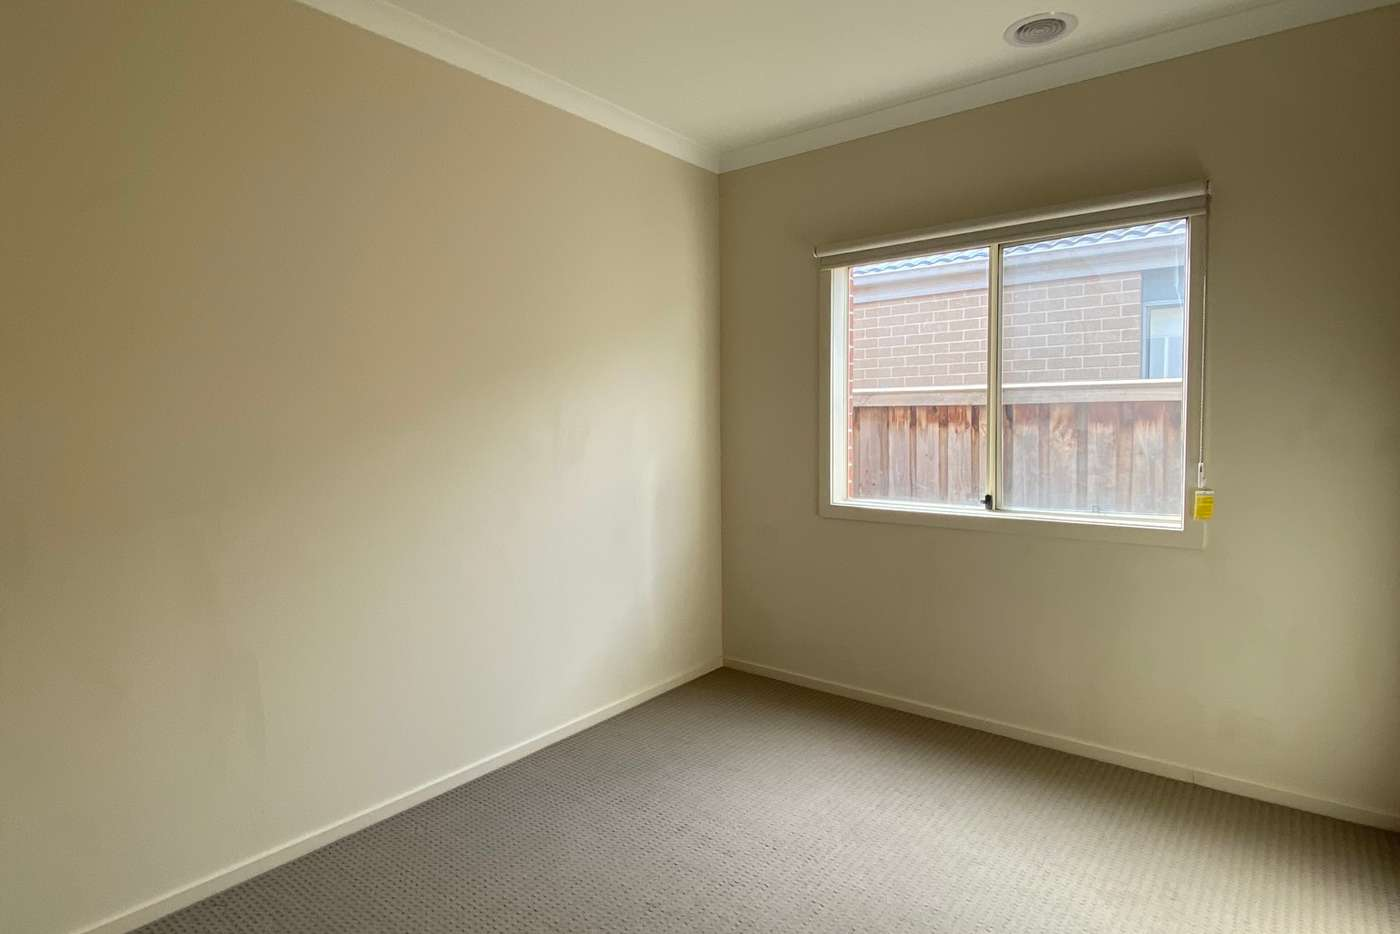 Sixth view of Homely house listing, 118 Crossway Avenue, Tarneit VIC 3029